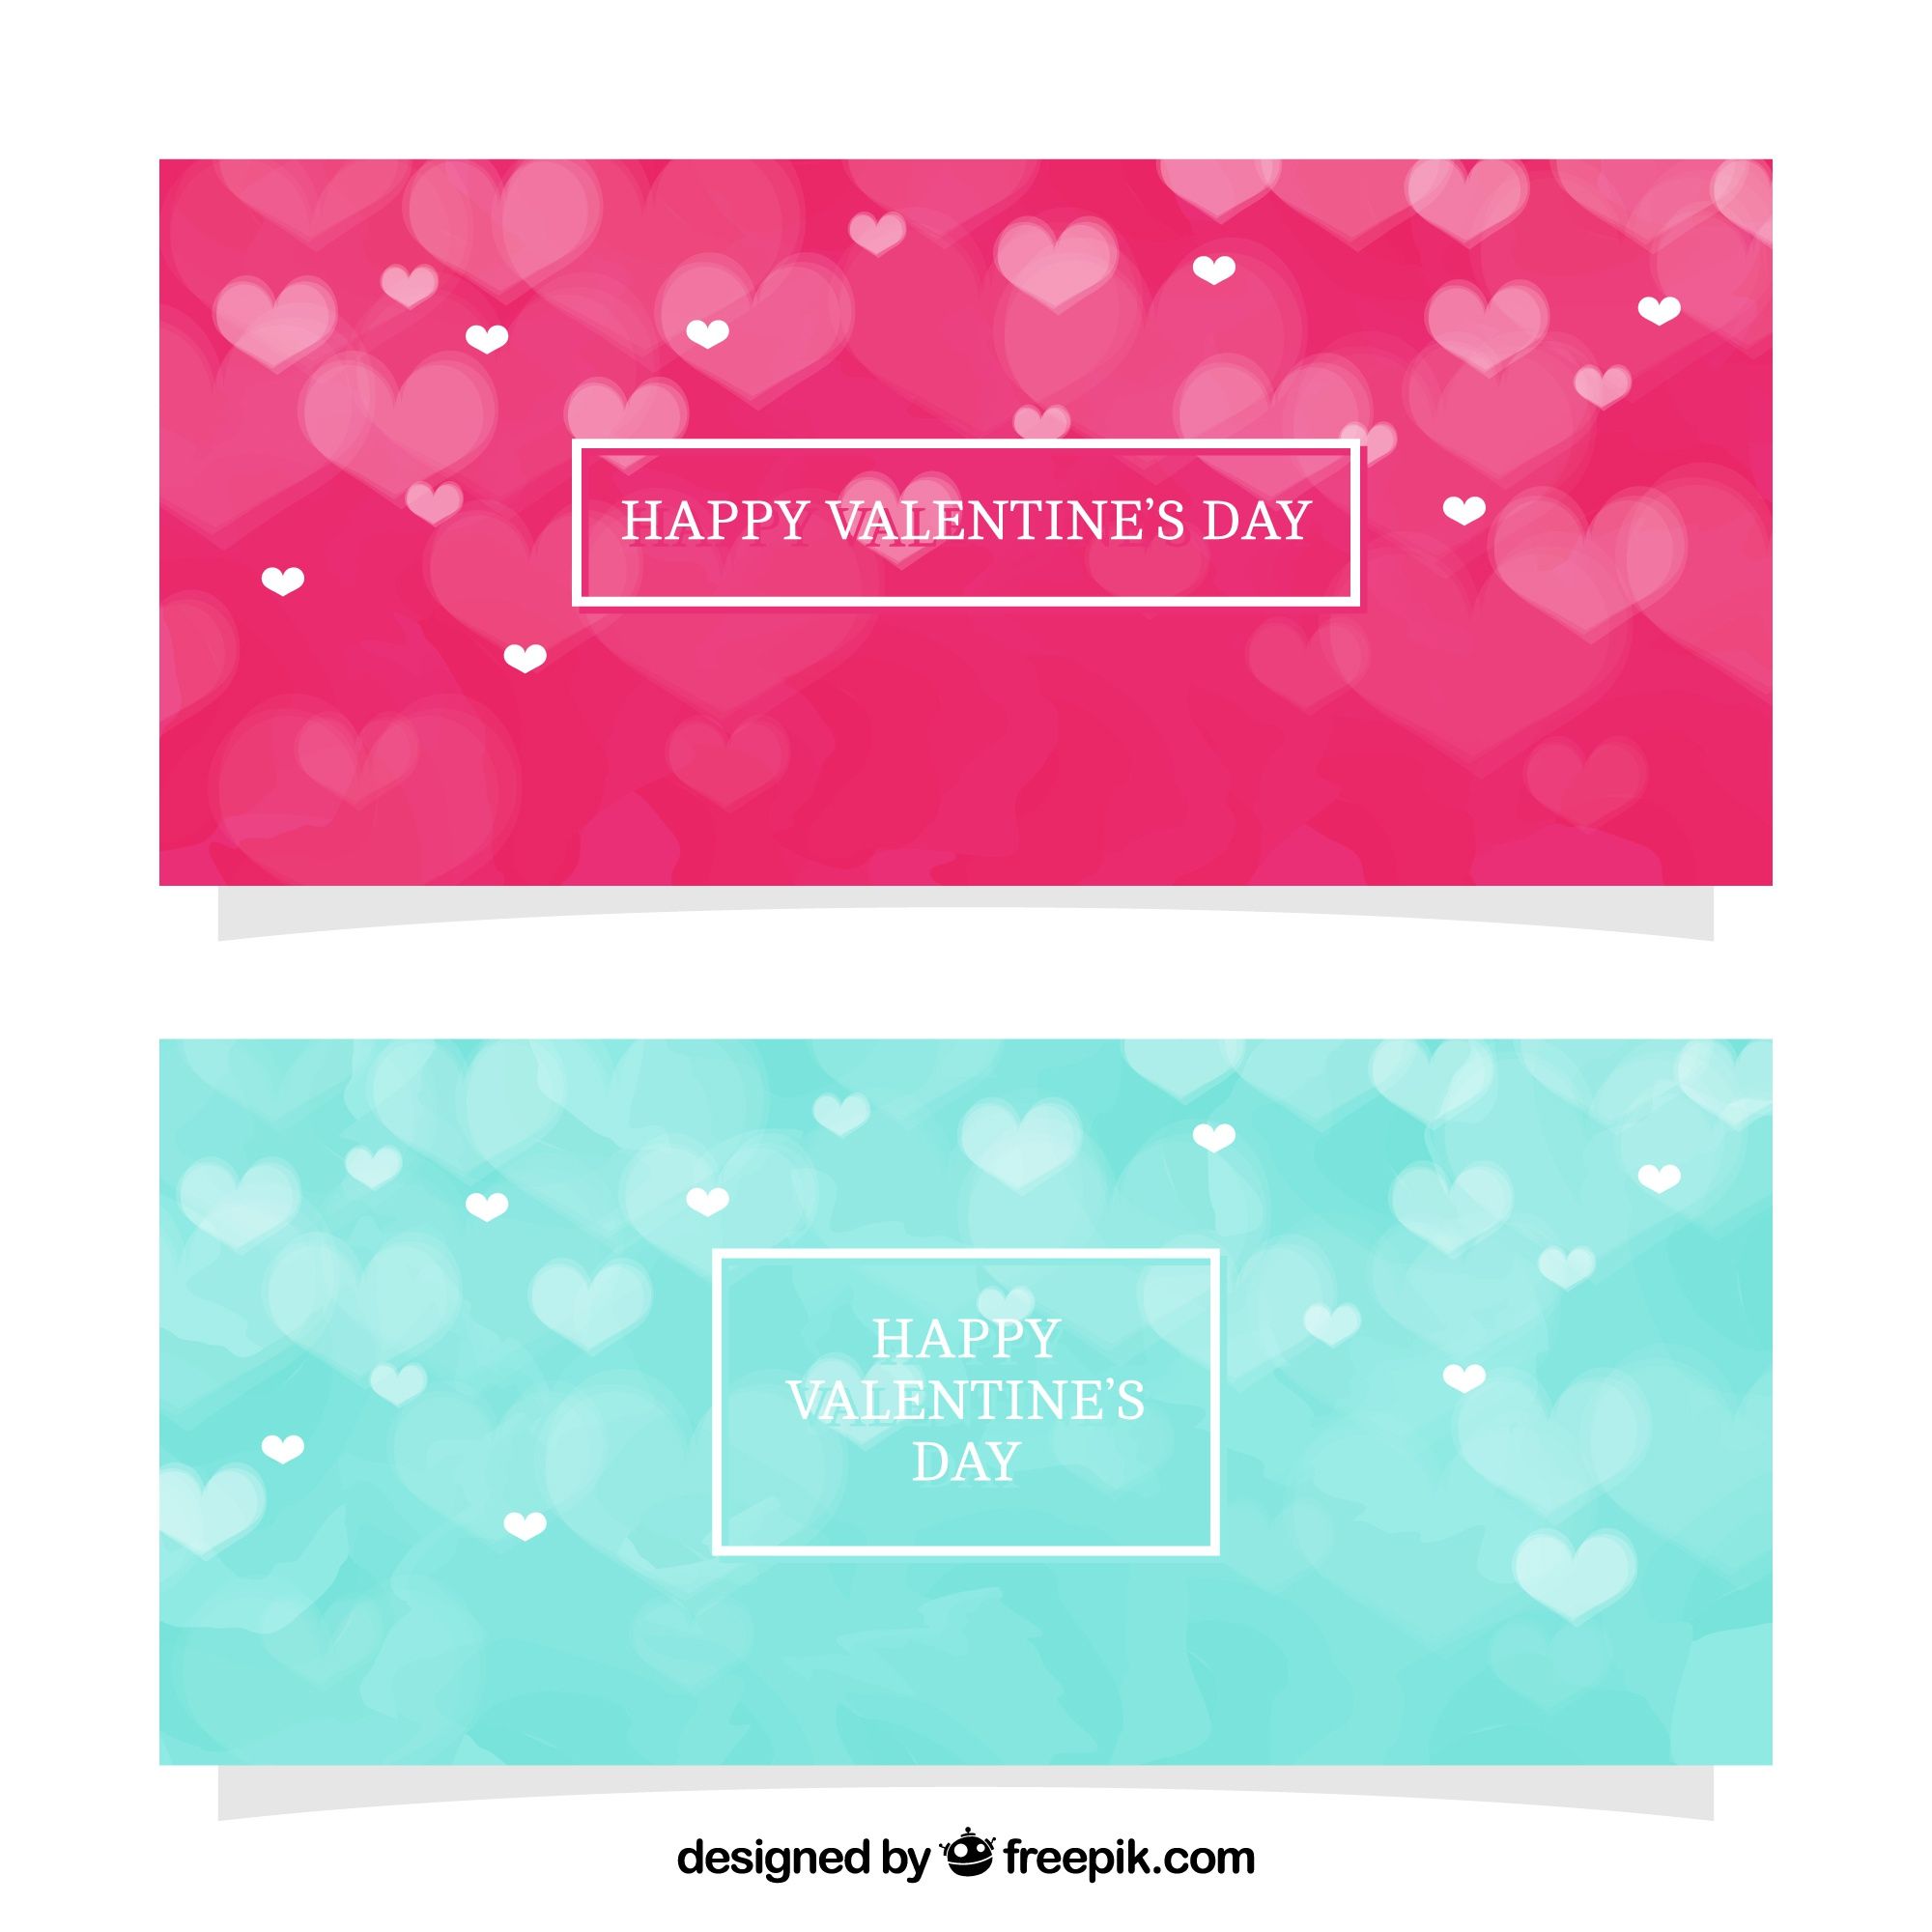 Bokeh banners for valentine's day